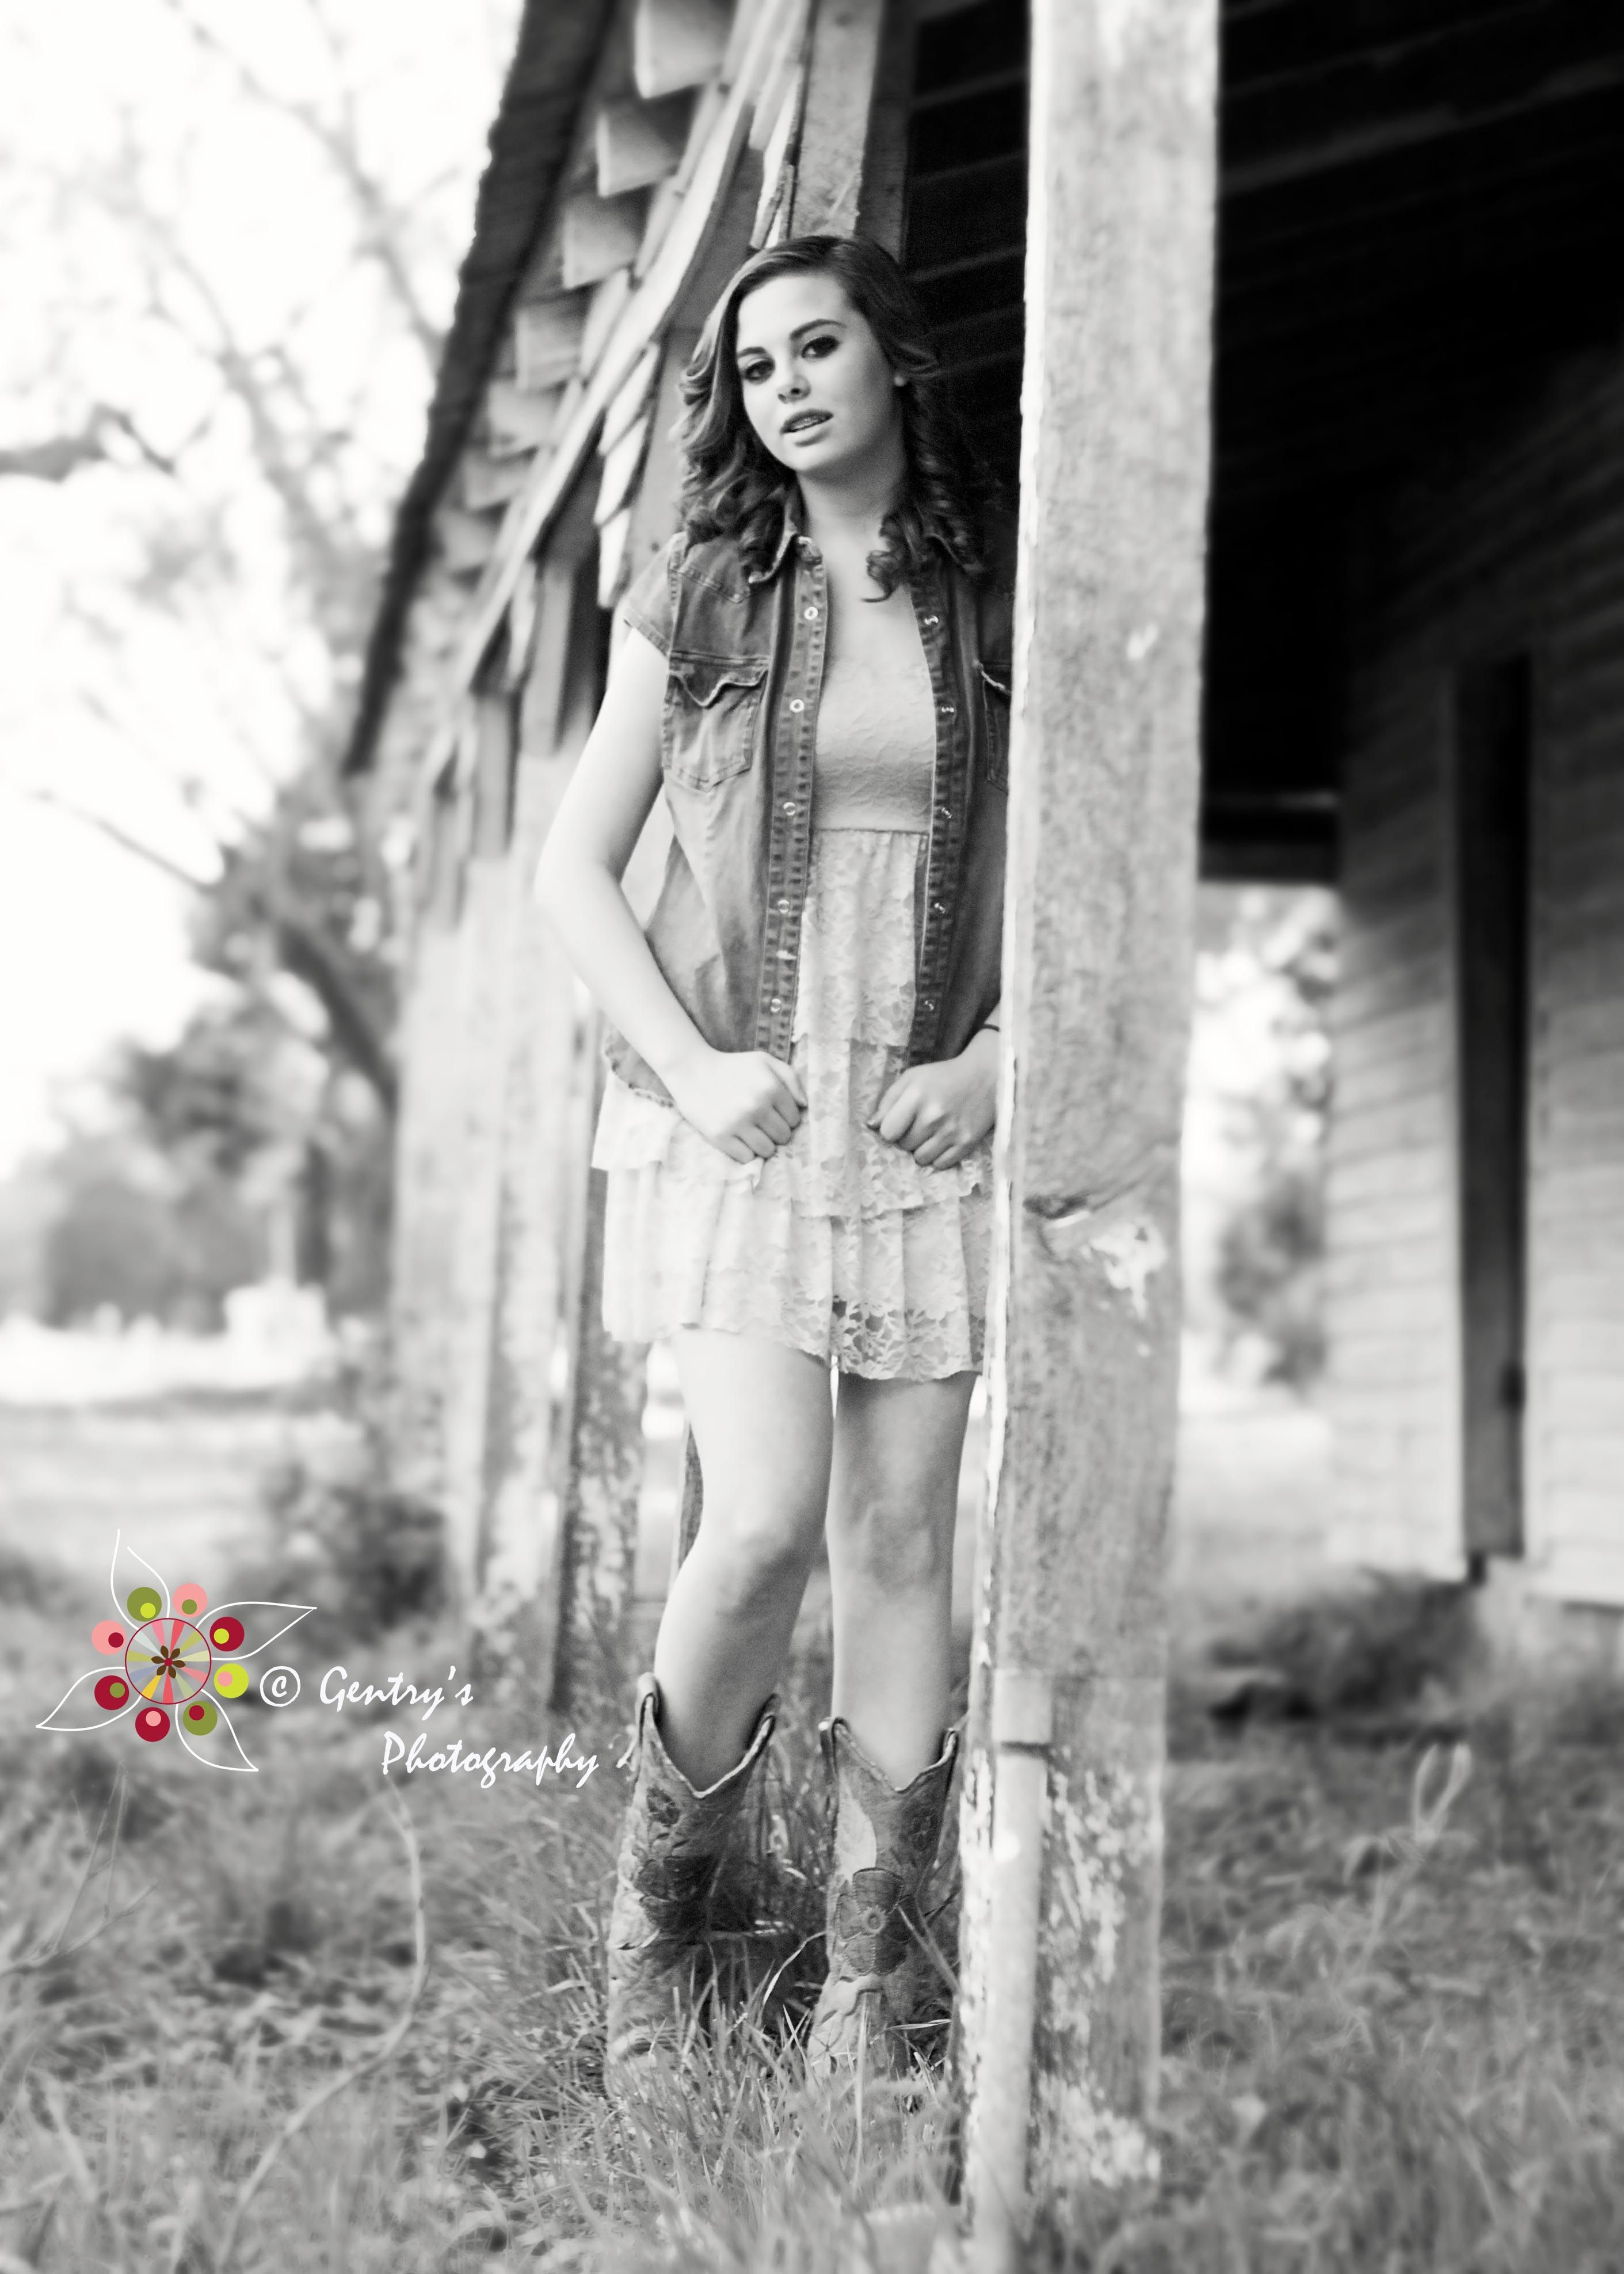 Boots country for women photography photo fotos